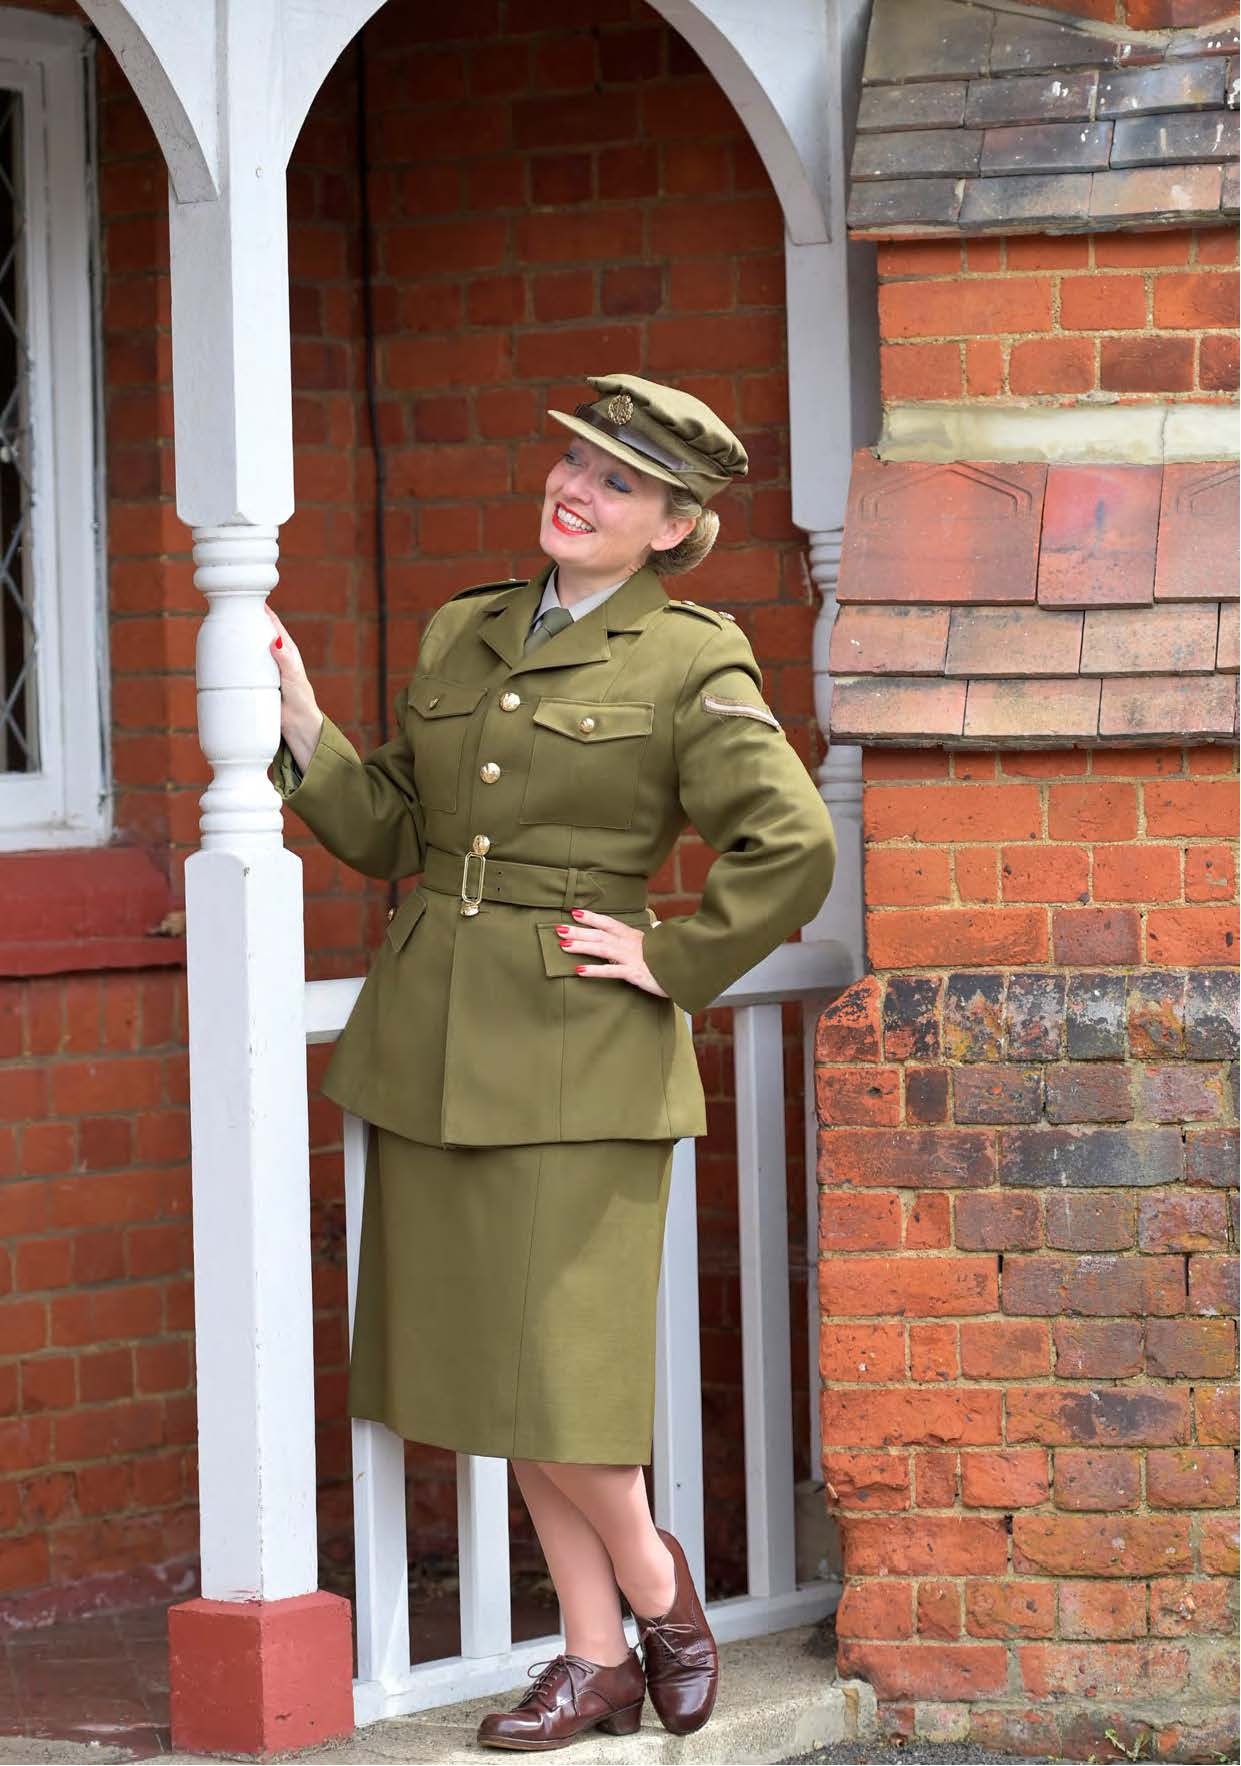 Fiona at Bletchley Park